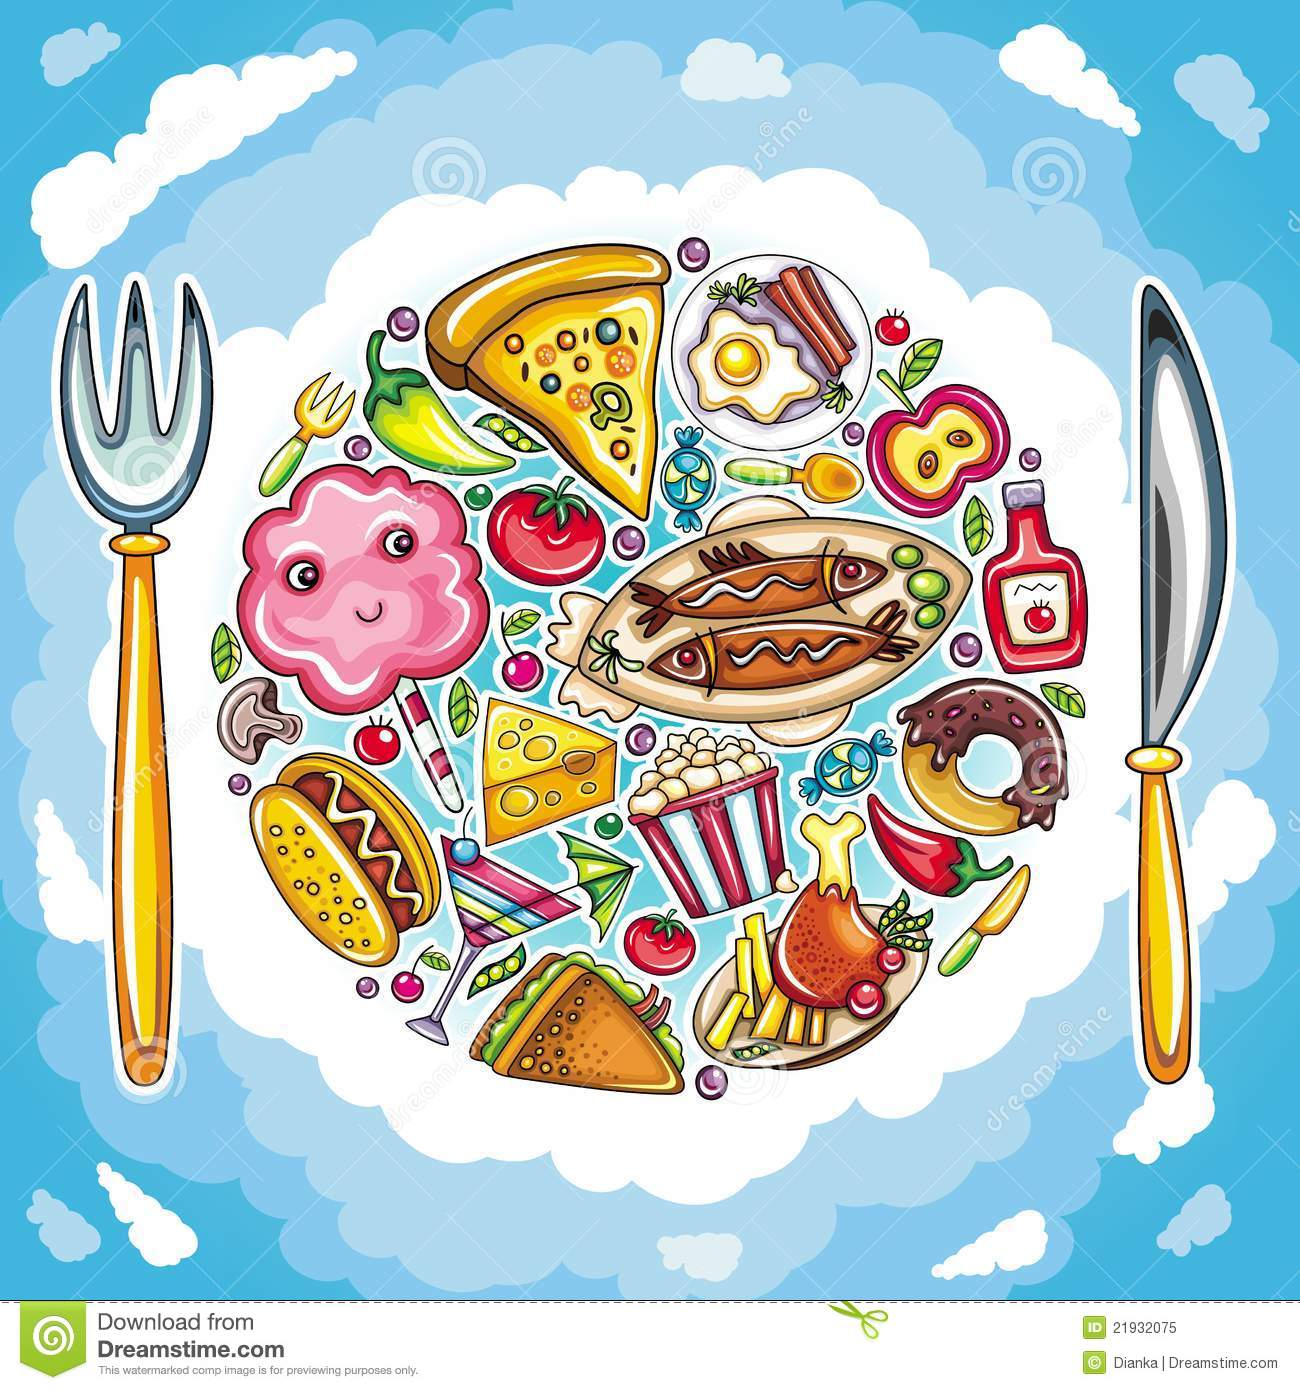 Colorful planet of cute food